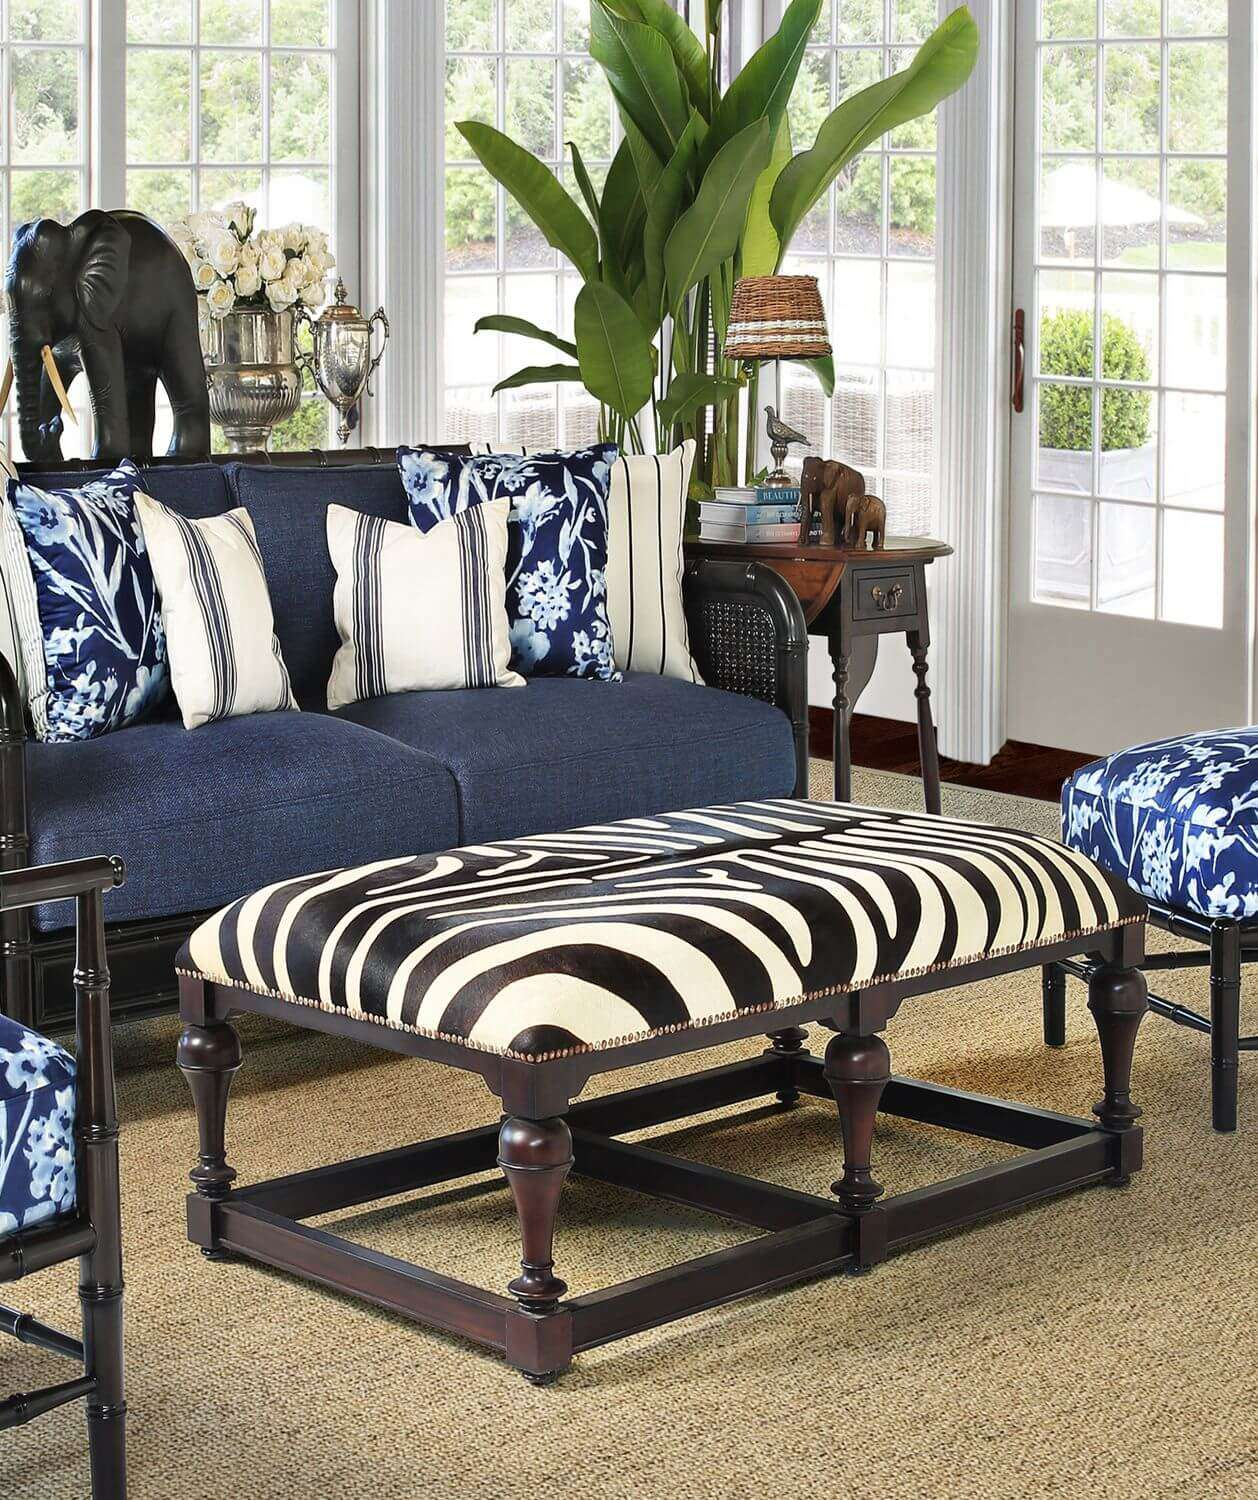 ZEBRA SOFA OTTOMAN - STUART MEMBERY HOME COLLECTION